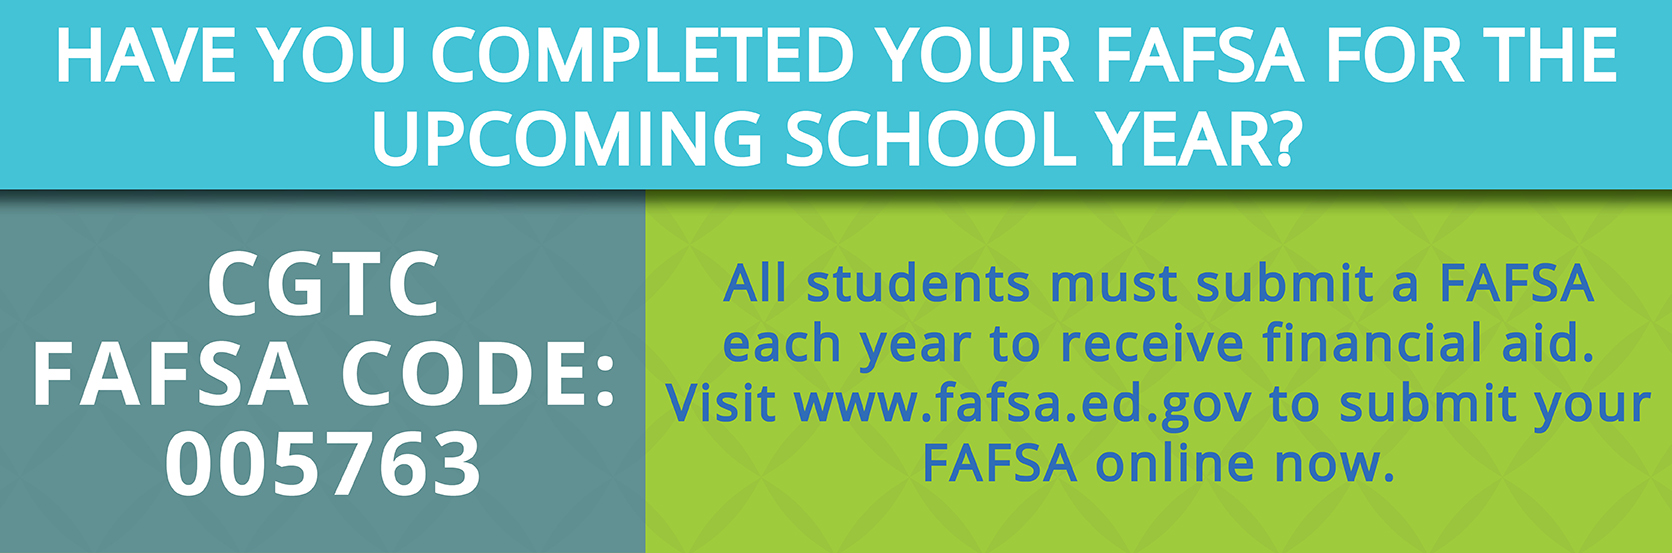 Have you completed your FAFSA for the upcoming school year? All students must submit a FAFSA each year to receive financial aid. Visit www.fafsa.ed.gov to complete your FAFSA online now.